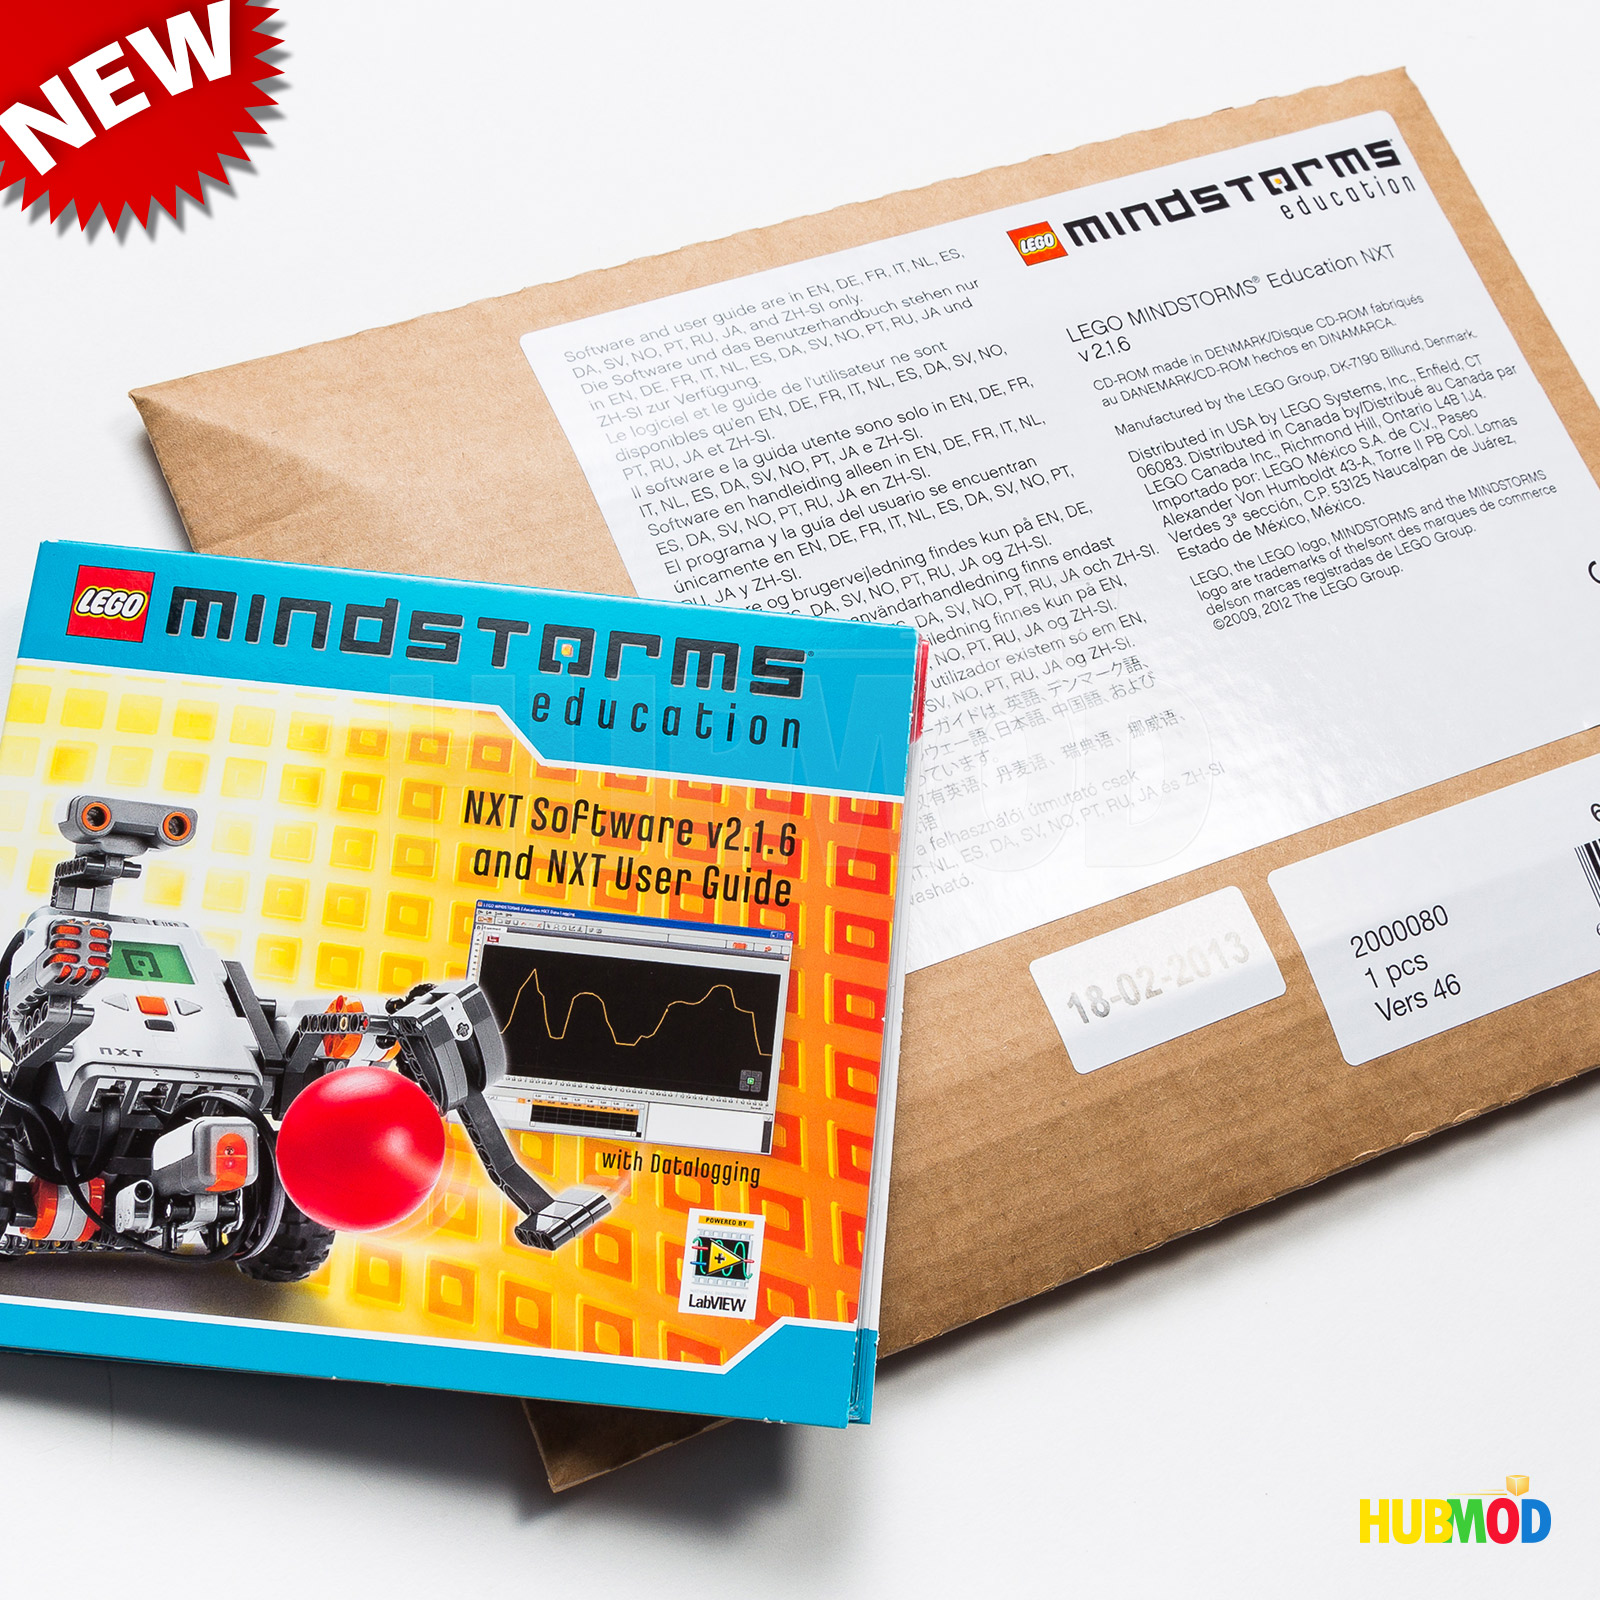 Details about NEW LEGO MINDSTORMS Education NXT Software 2 1 6 User Guide  2000080 6029807